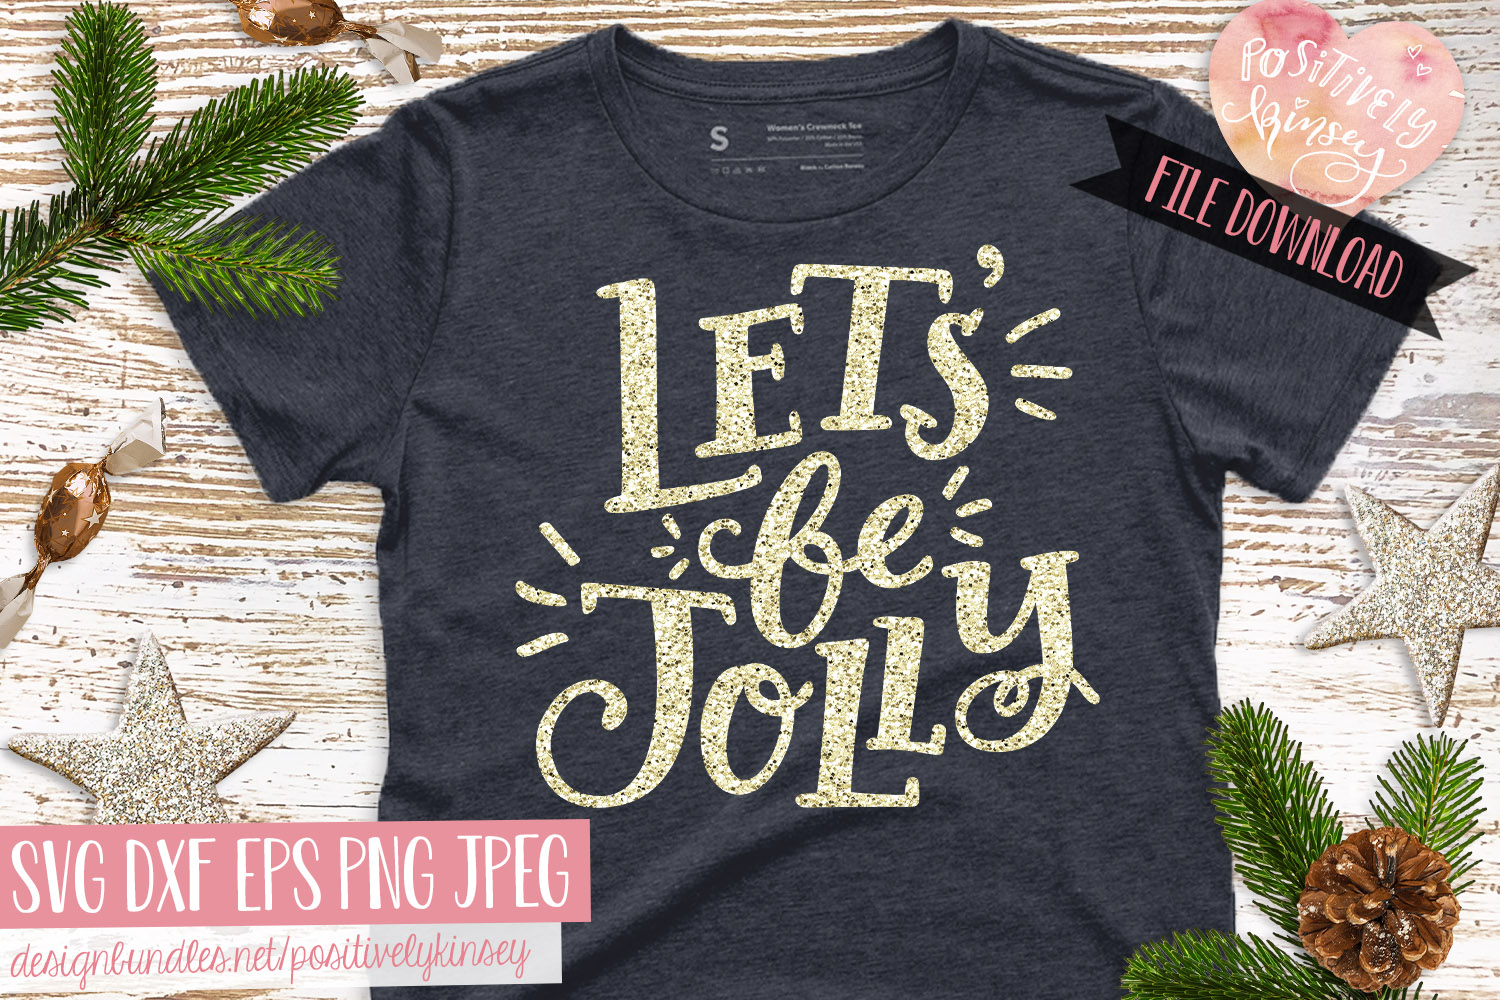 Christmas Quote SVG DXF PNG EPS Let's Be Jolly SVG Design example image 1